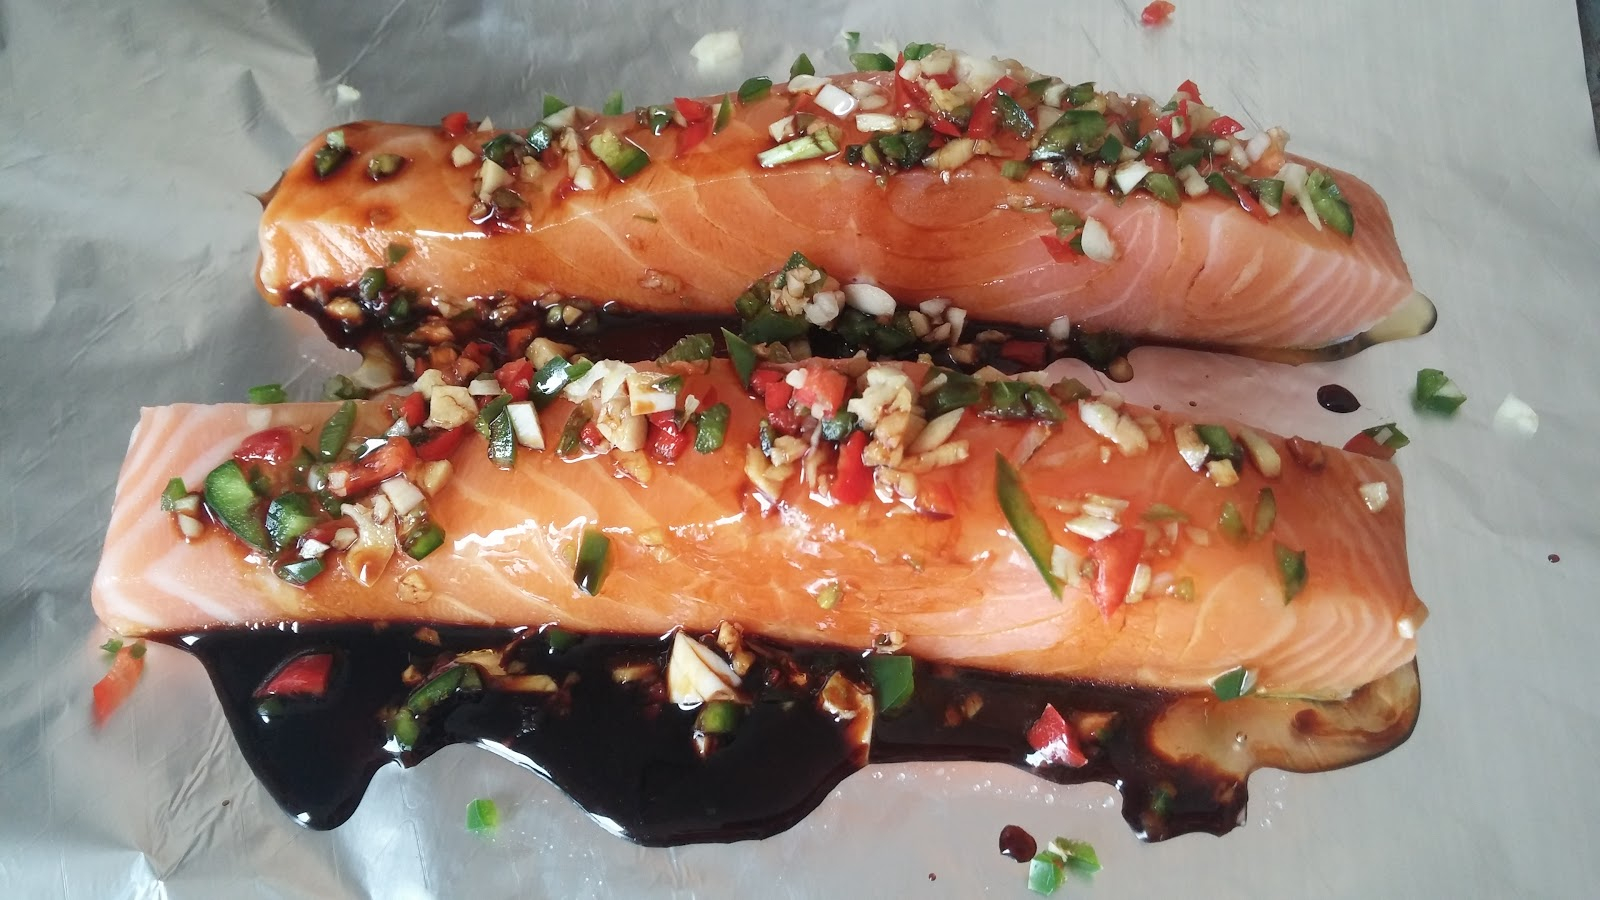 Chilli garlic soy sauce and honey on salmon